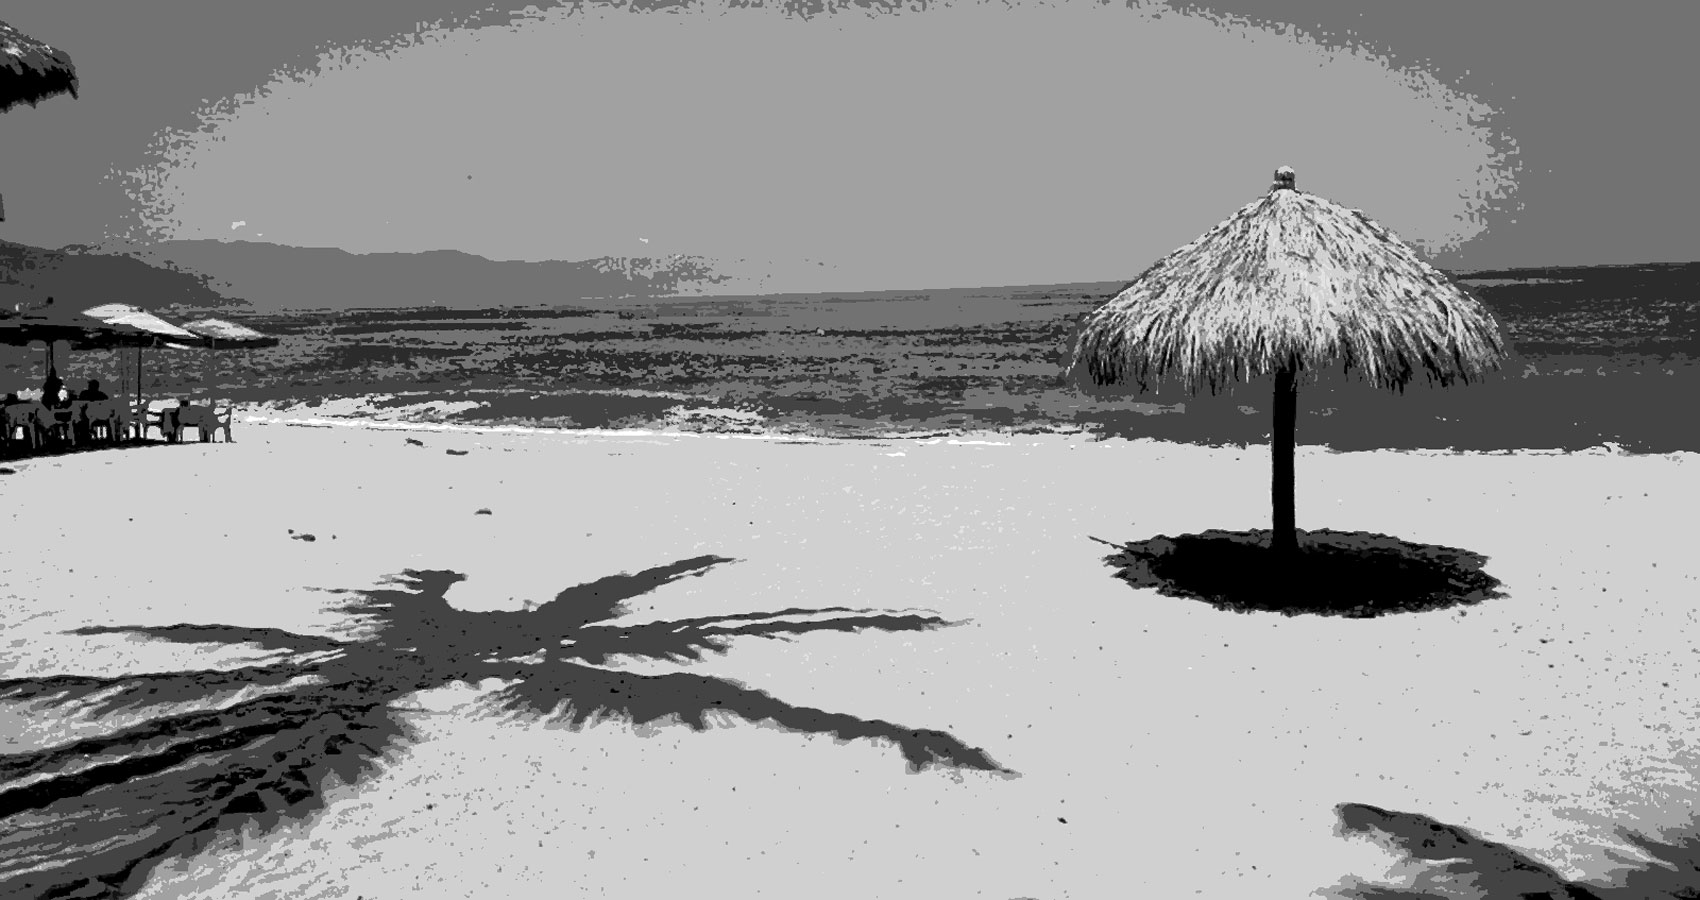 Honeymoon In Mexico II by Thomas Park at Spillwords.com